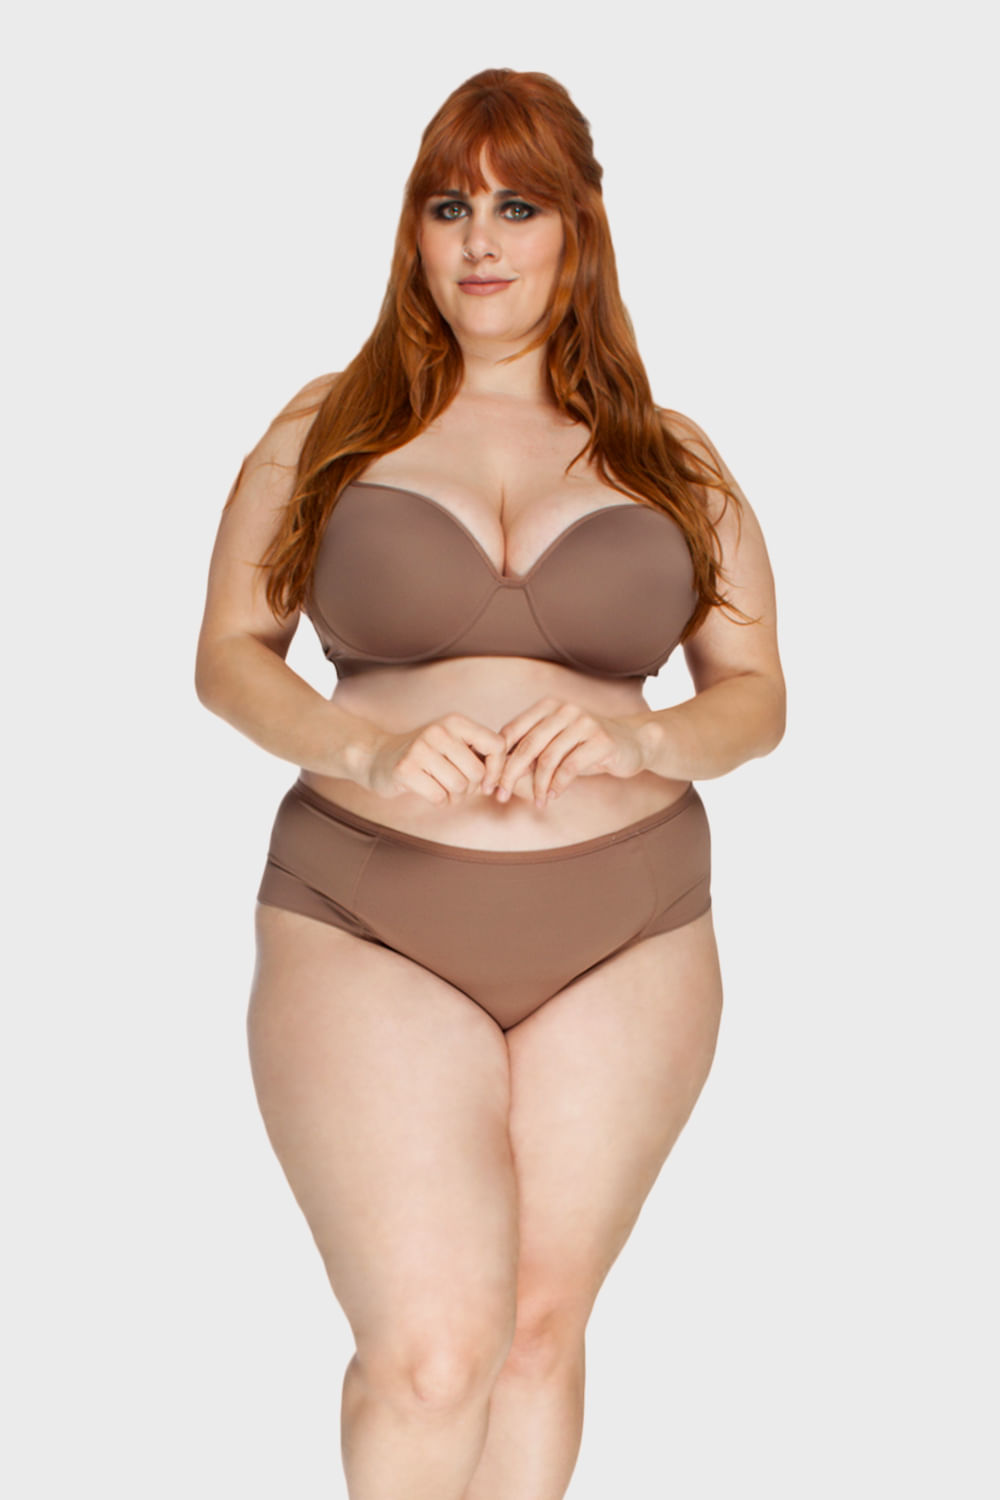 Calcinha-Laterais-Largas-Plus-Size_3